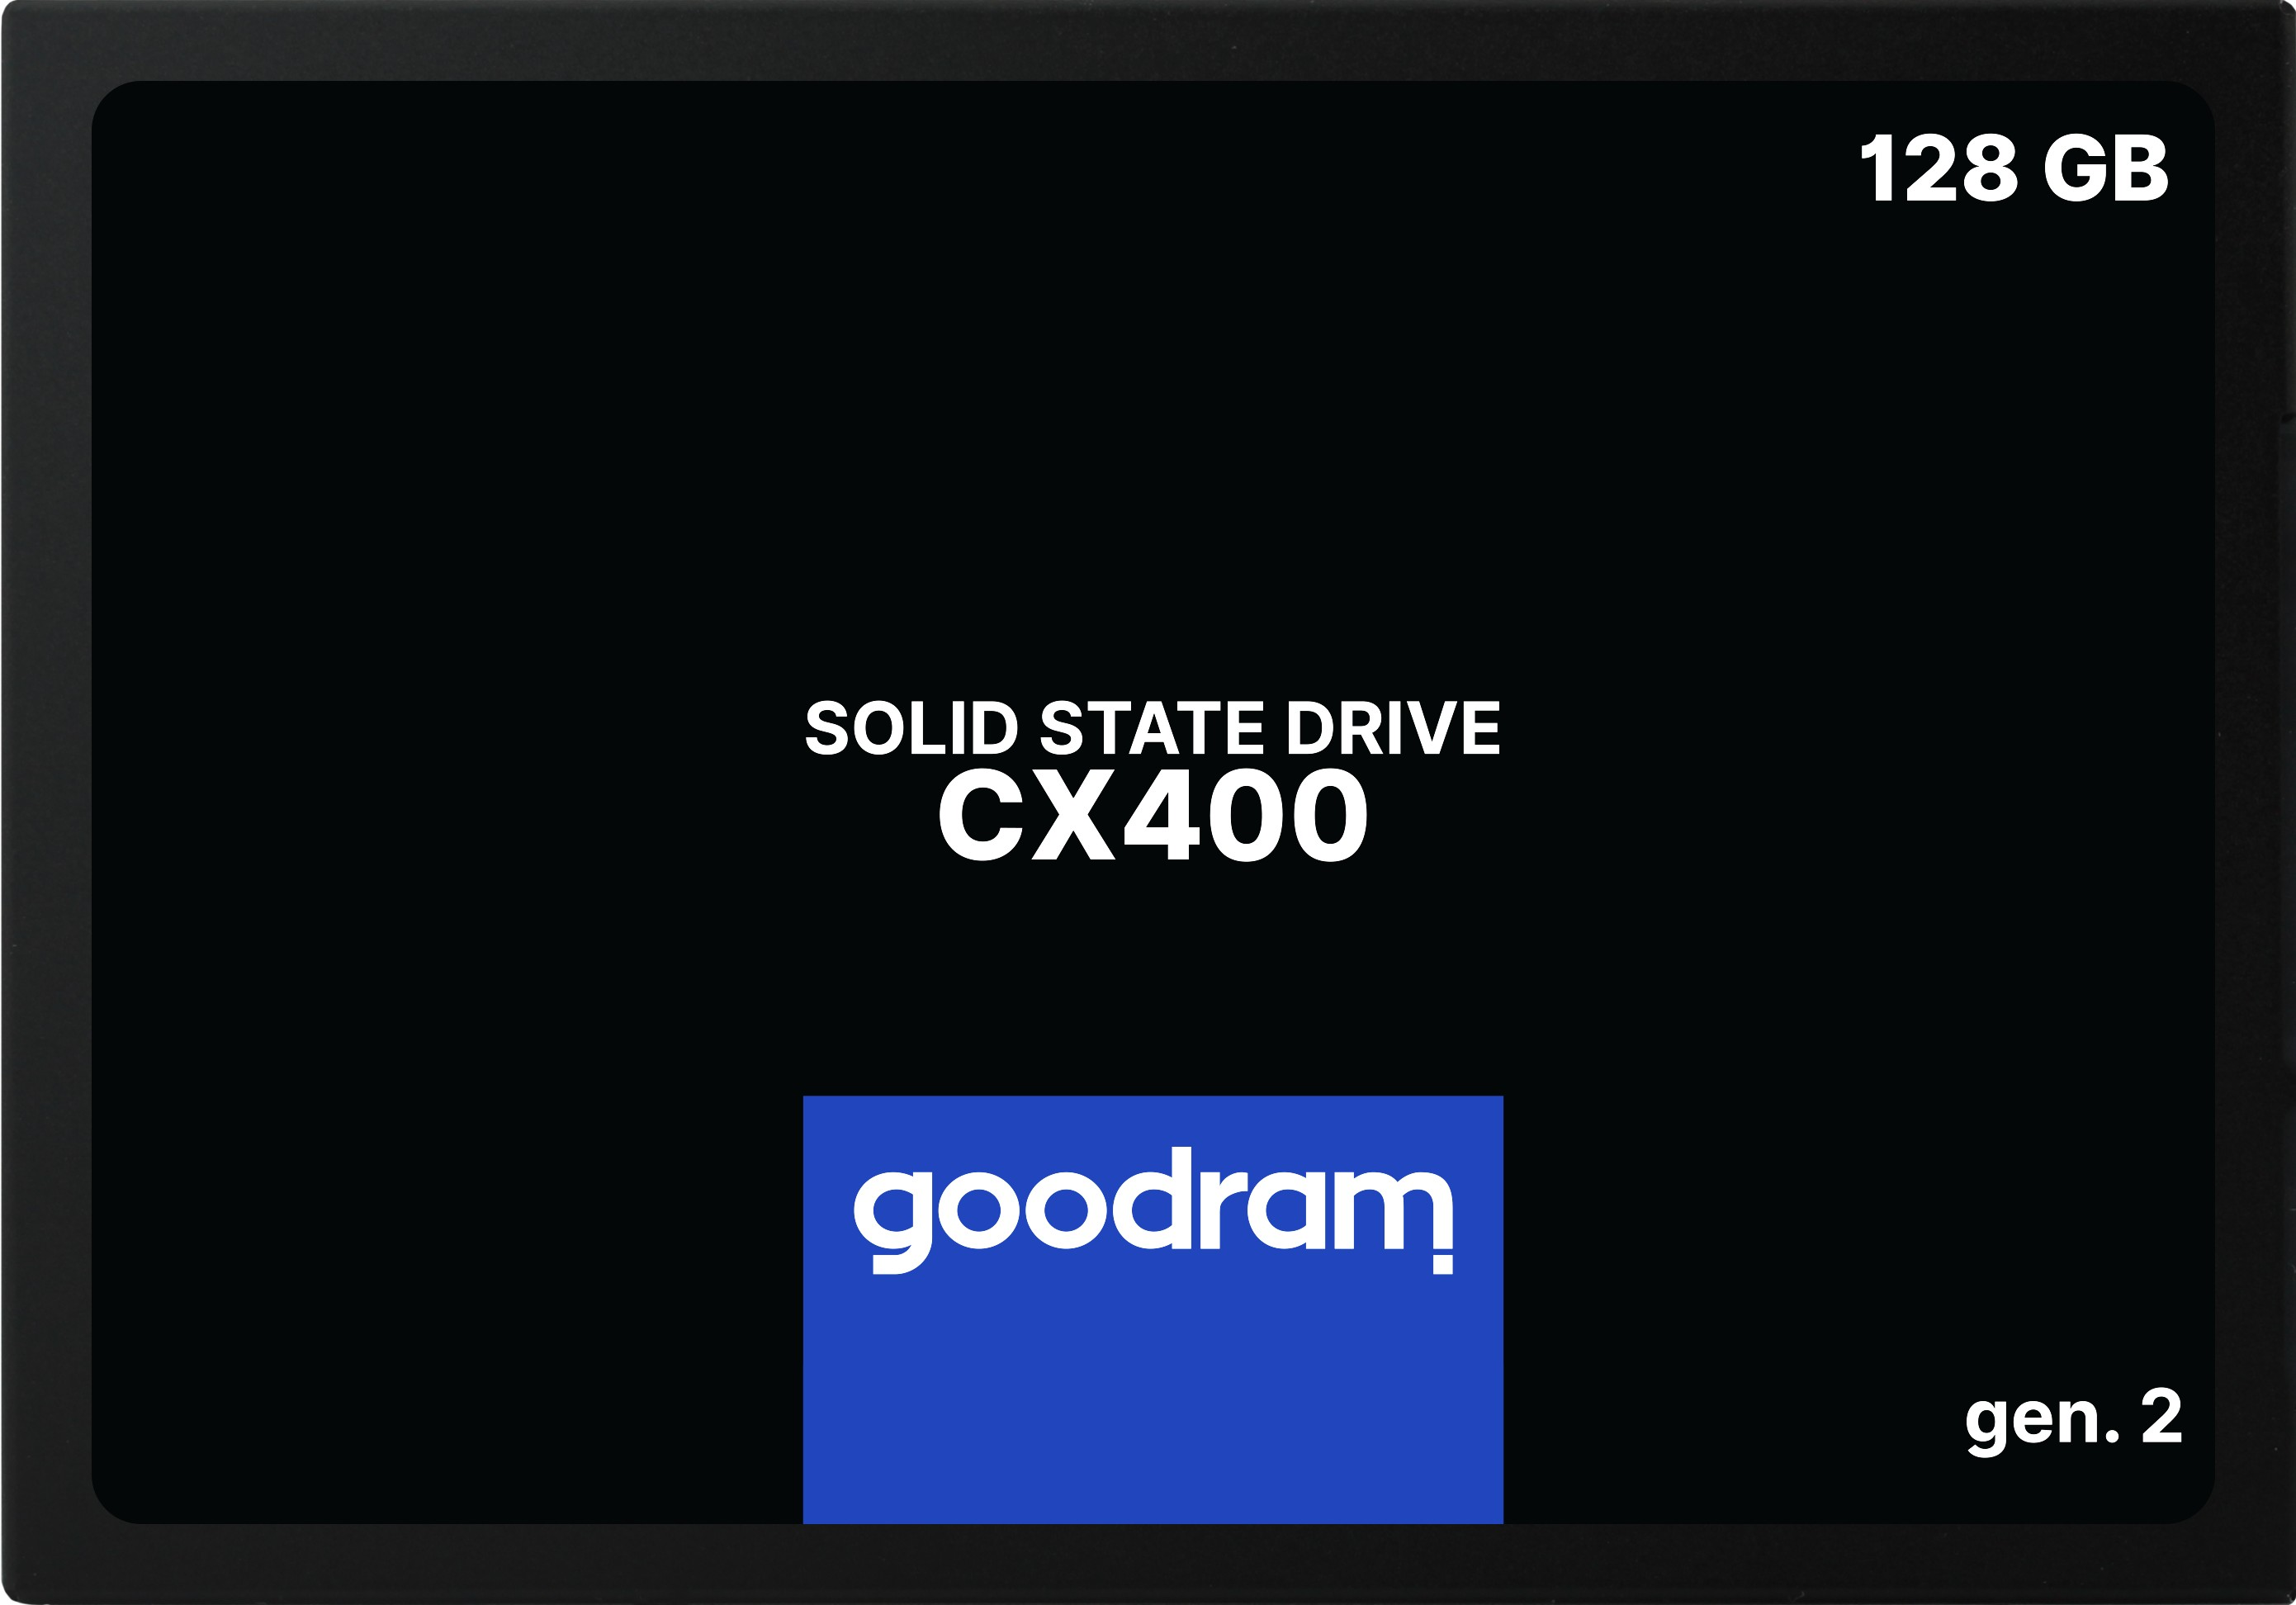 #SSD GOODRAM CX400 128GB gen. 2